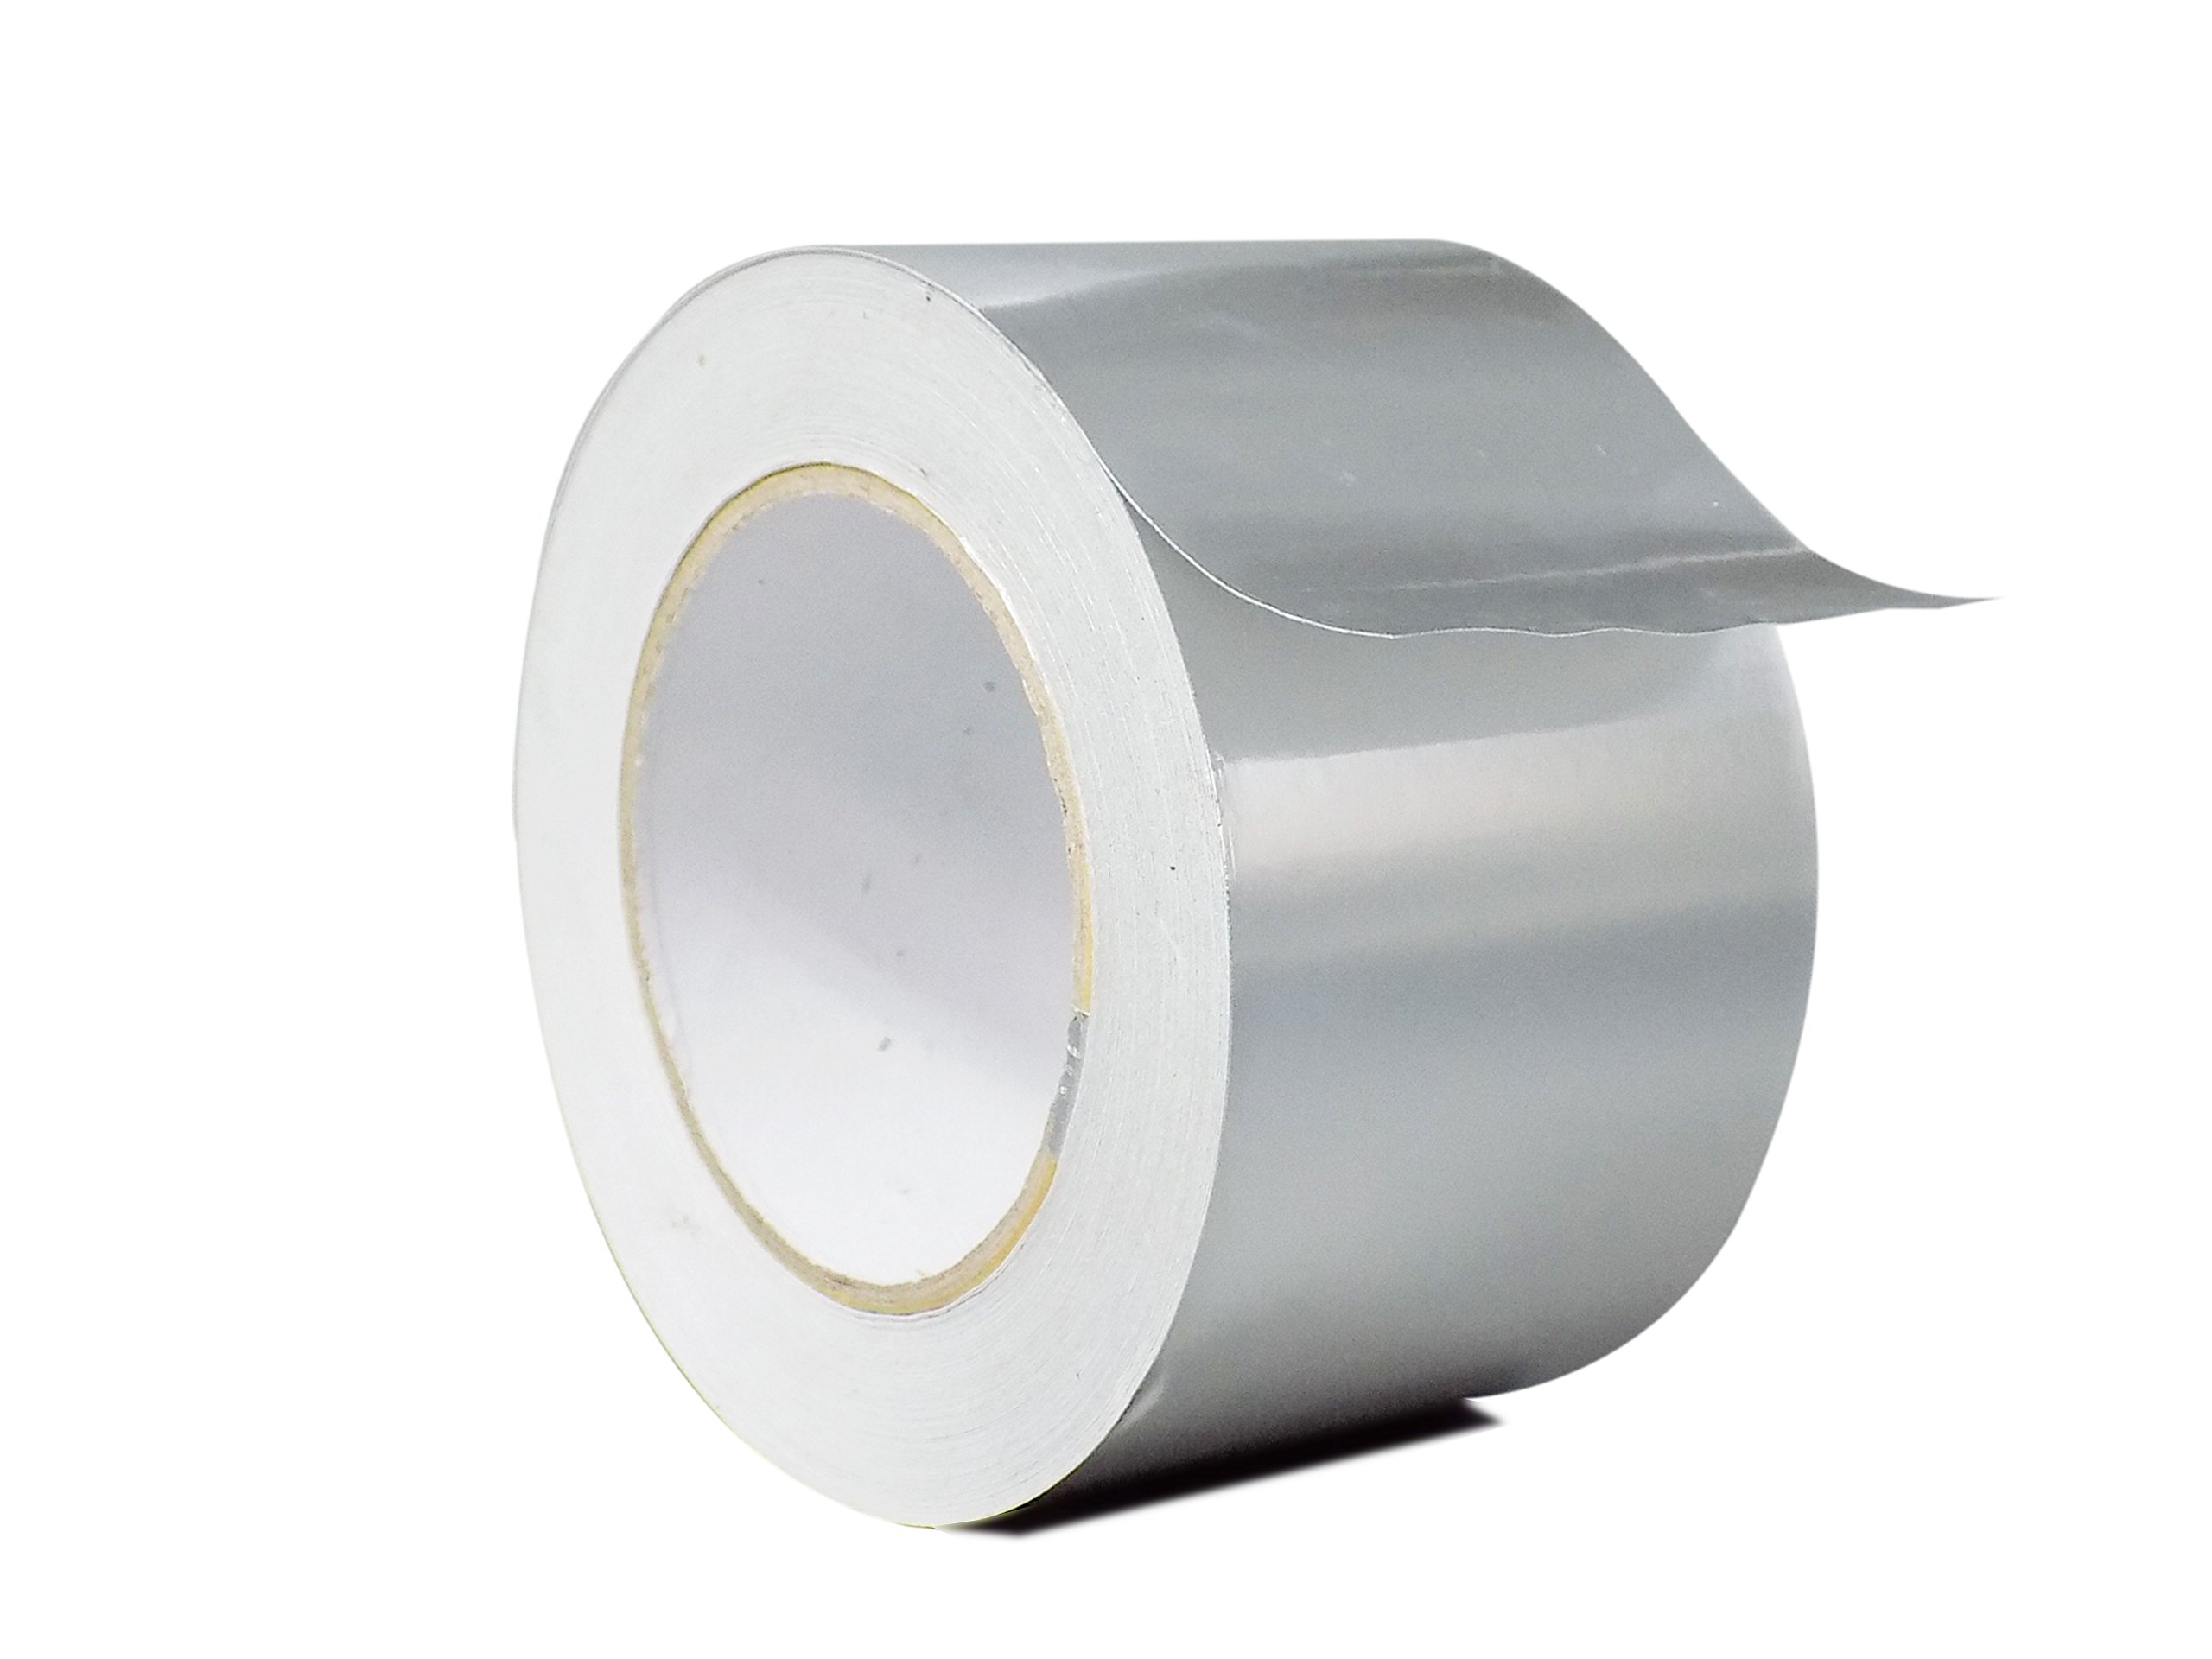 WOD AF-20R Premium Grade General Purpose Heat Shield Resistant Aluminum Foil Tape - Good for HVAC, Air Ducts, Insulation (Available in Multiple Sizes): 3 in. wide x 50 yds.